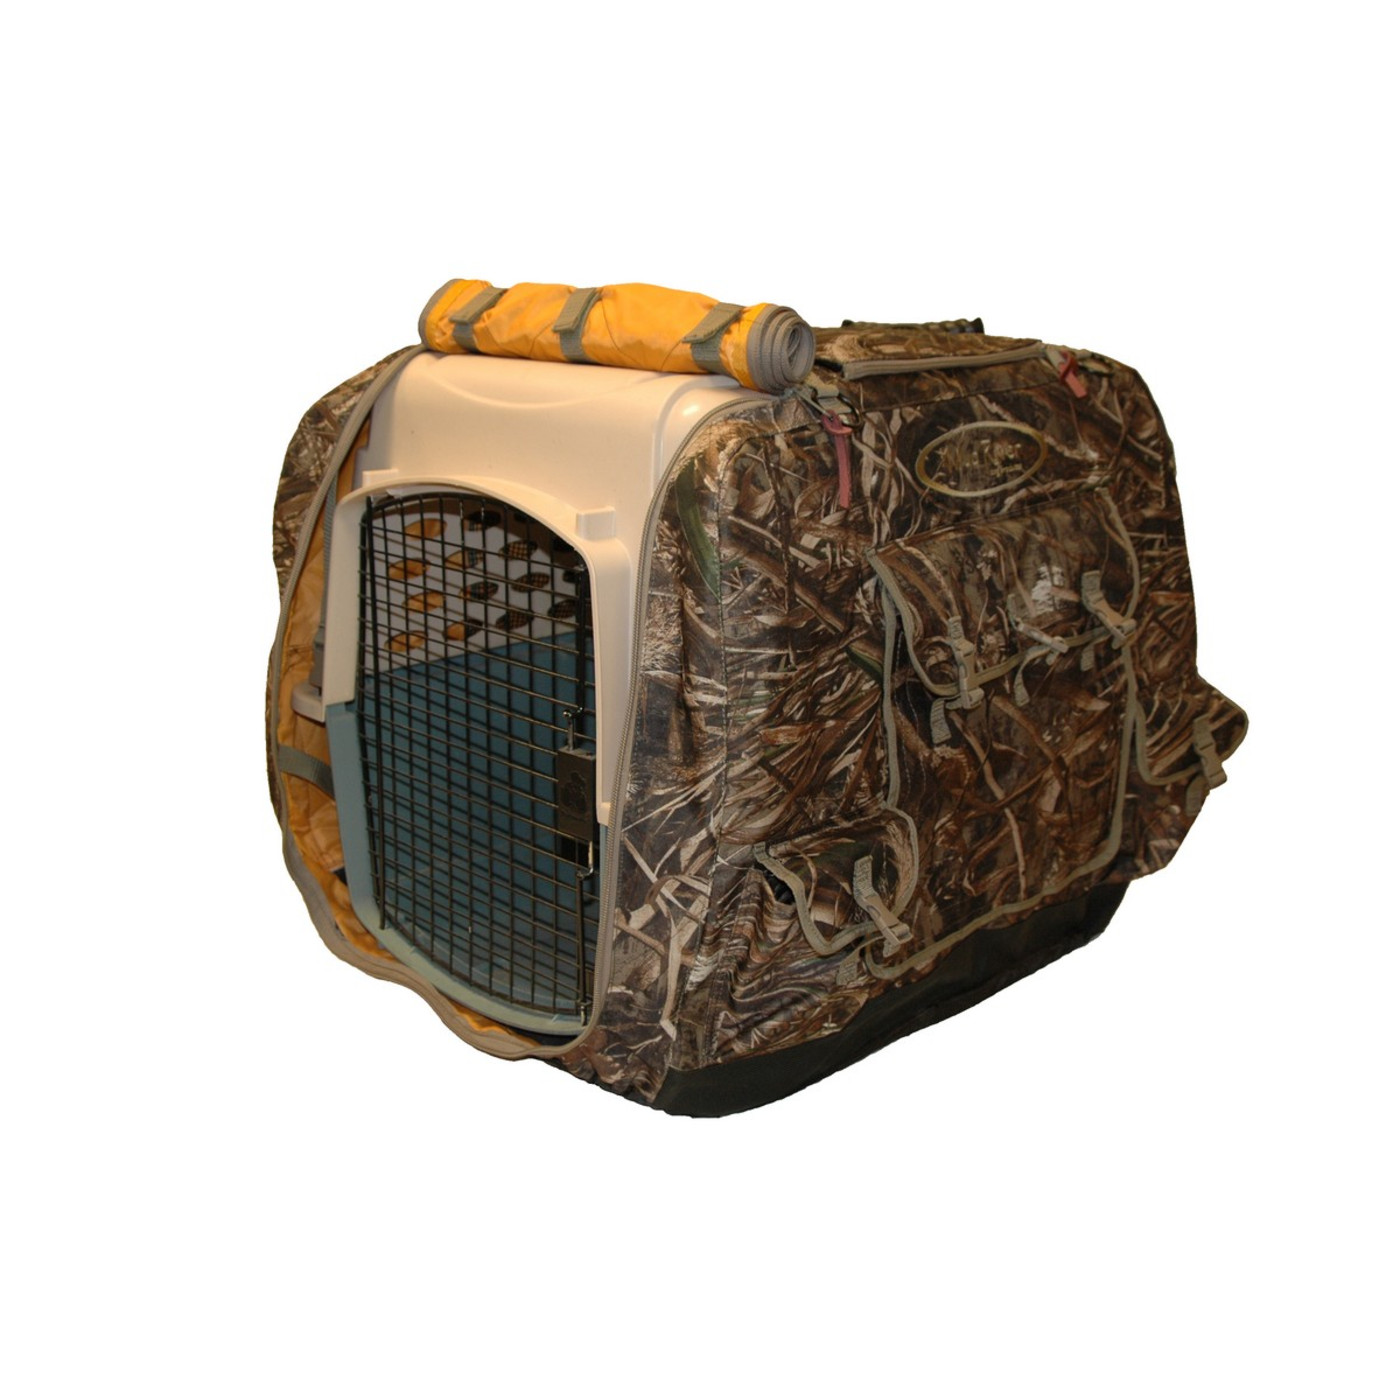 Mud River Dixie Kennel Cover in Realtree Max 5 Color